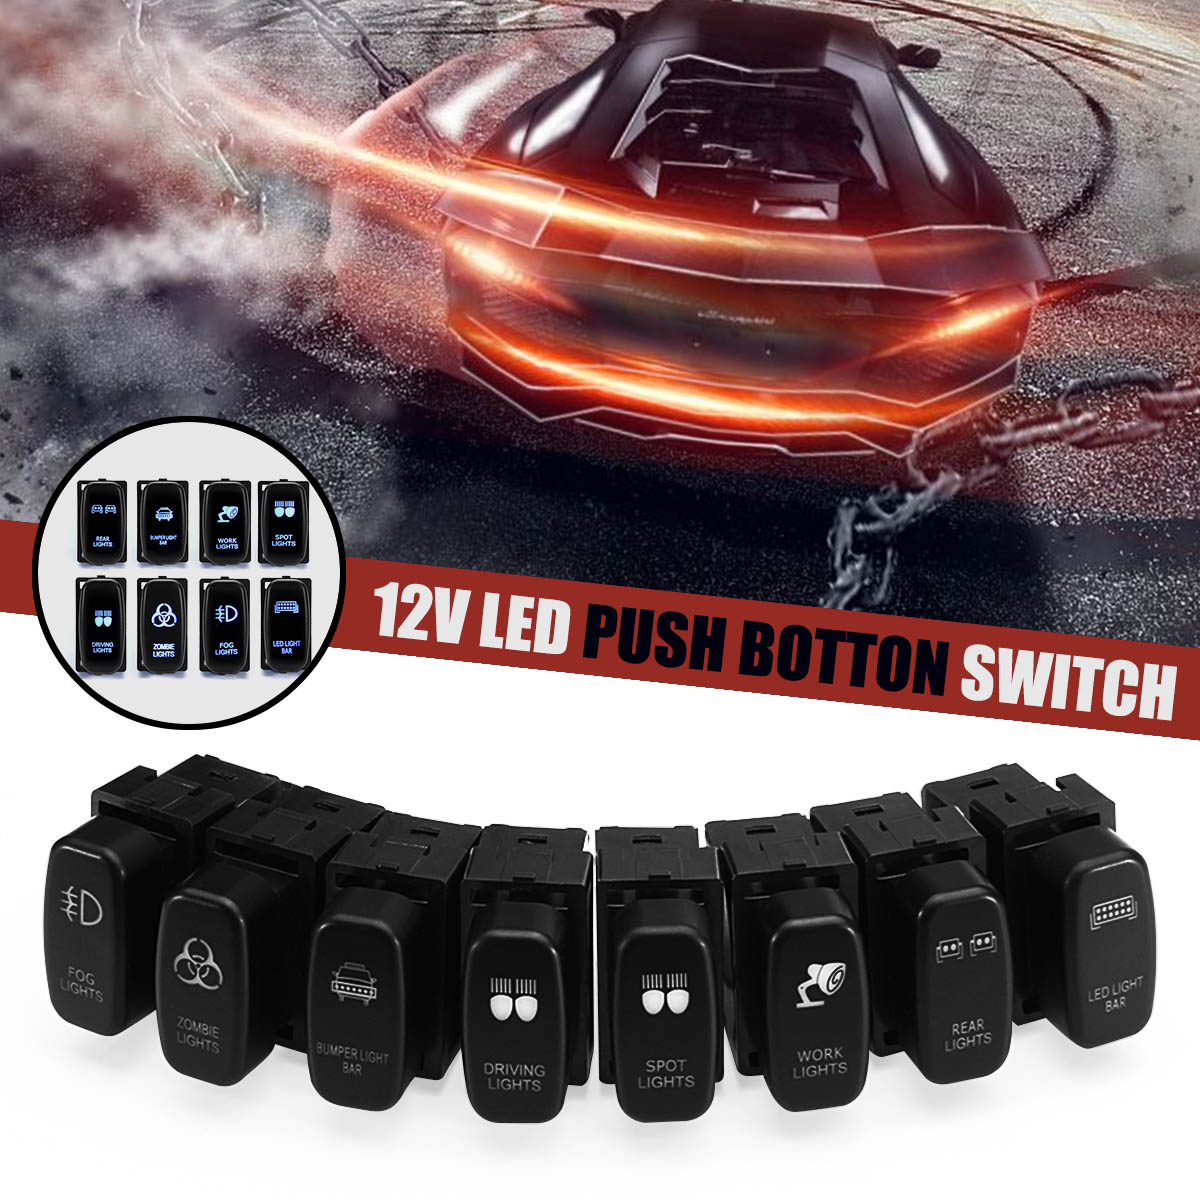 New 1pc 12V Red/Blue LED Light Bar Spot Fog Rear Light Push Button Switch Car Led Switch For Mitsubishi Pajero Trition Endeavor